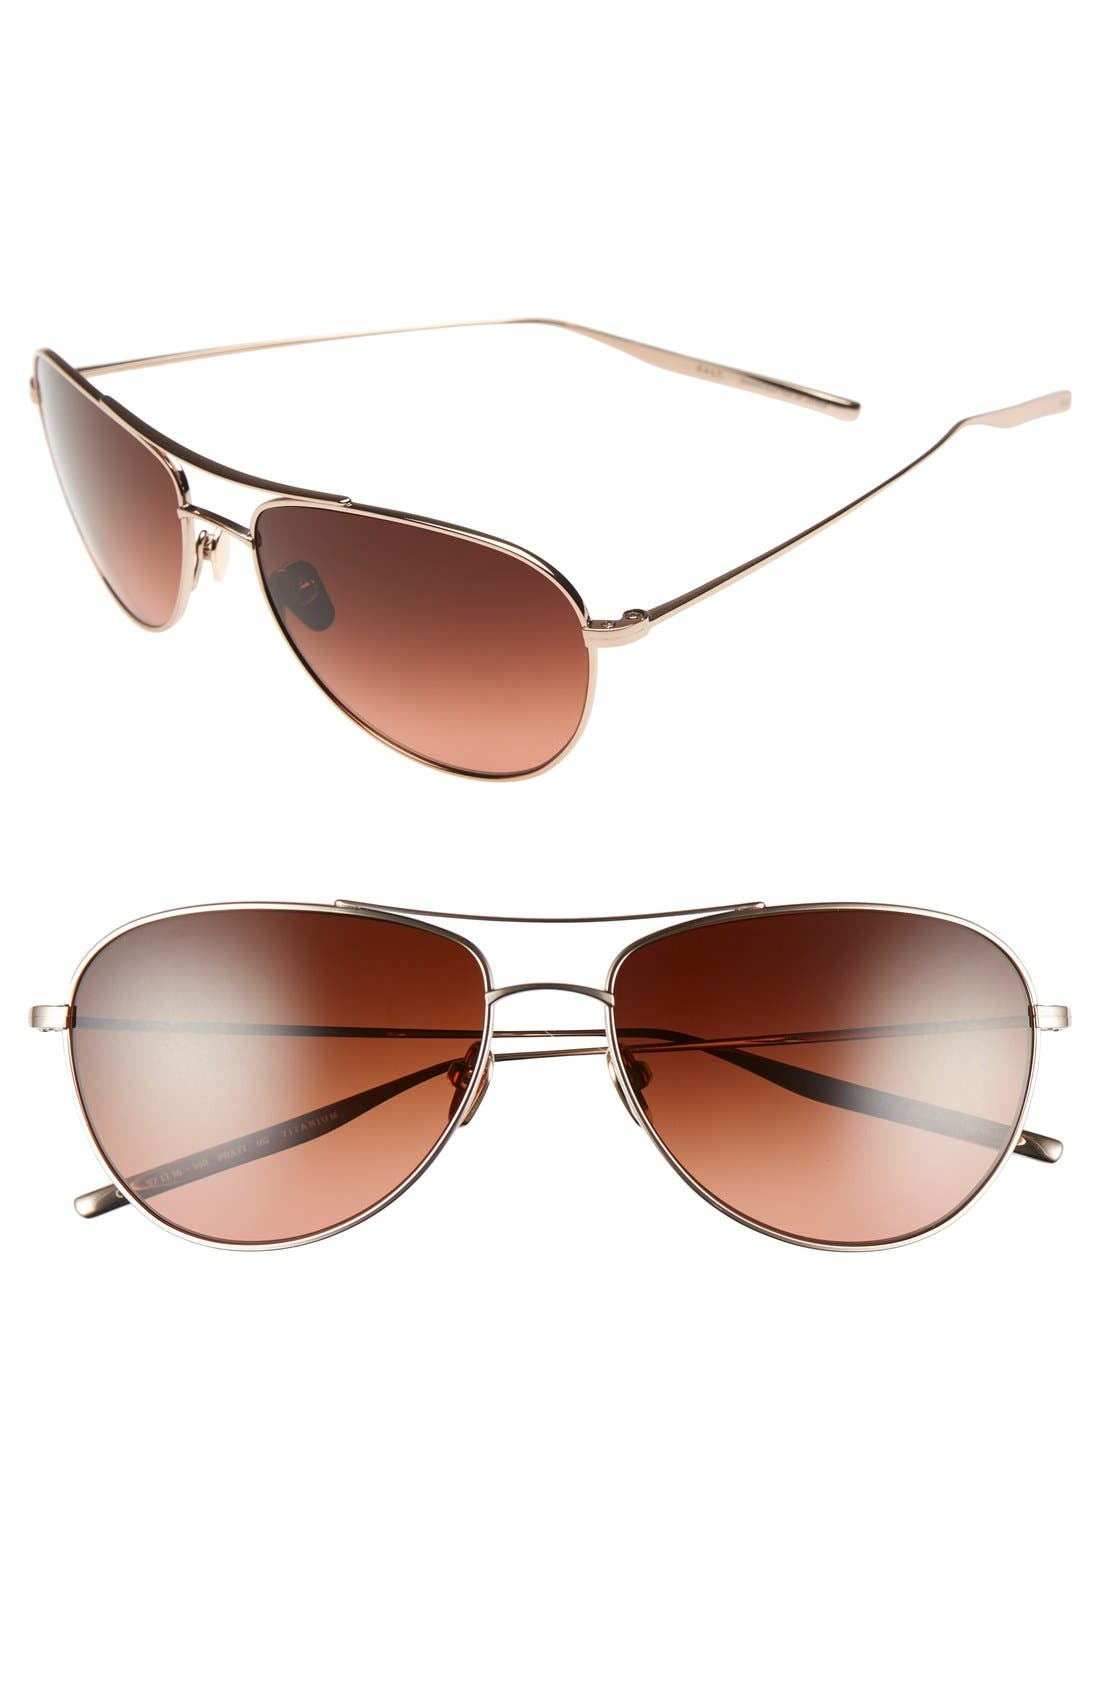 SALT 'Pratt' 57mm Aviator Sunglasses